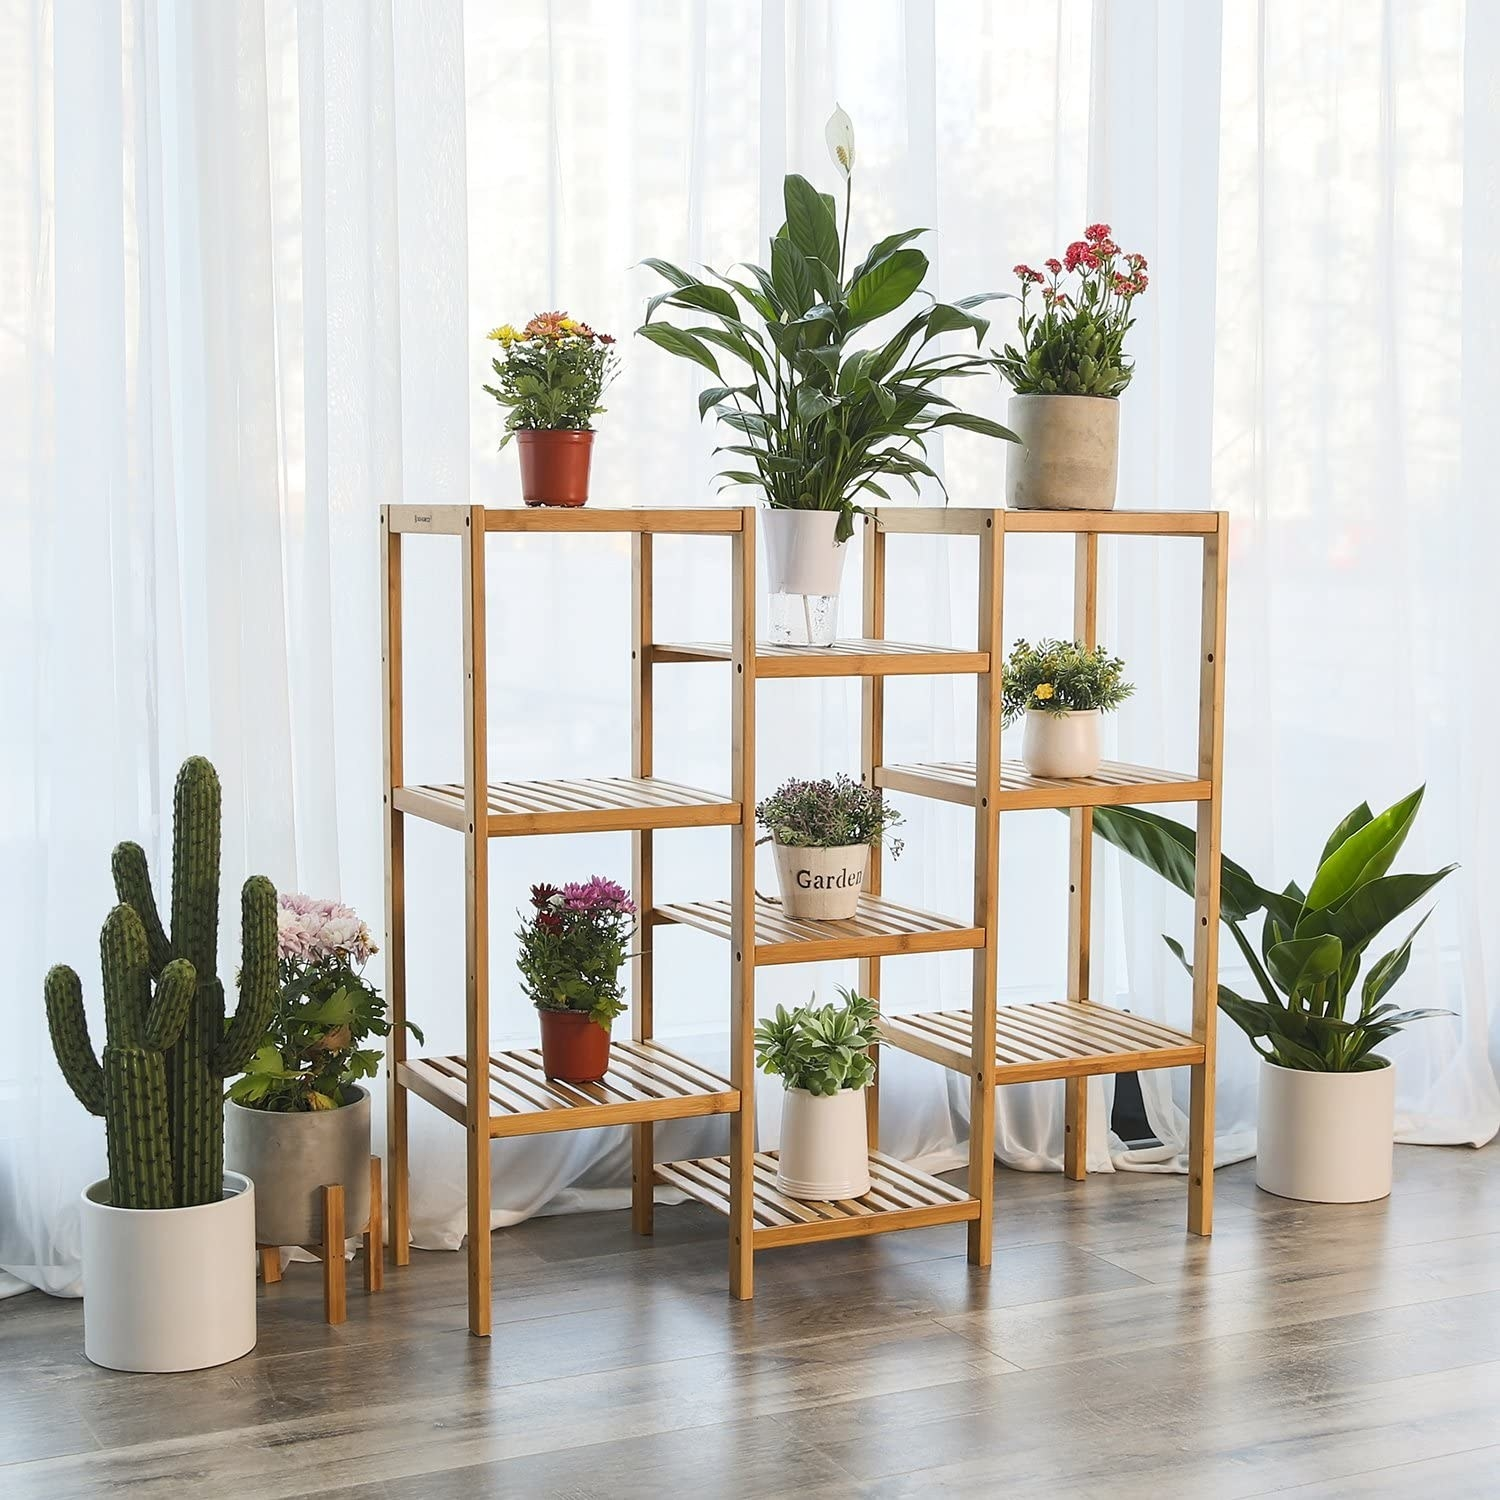 A shelf with planters on it